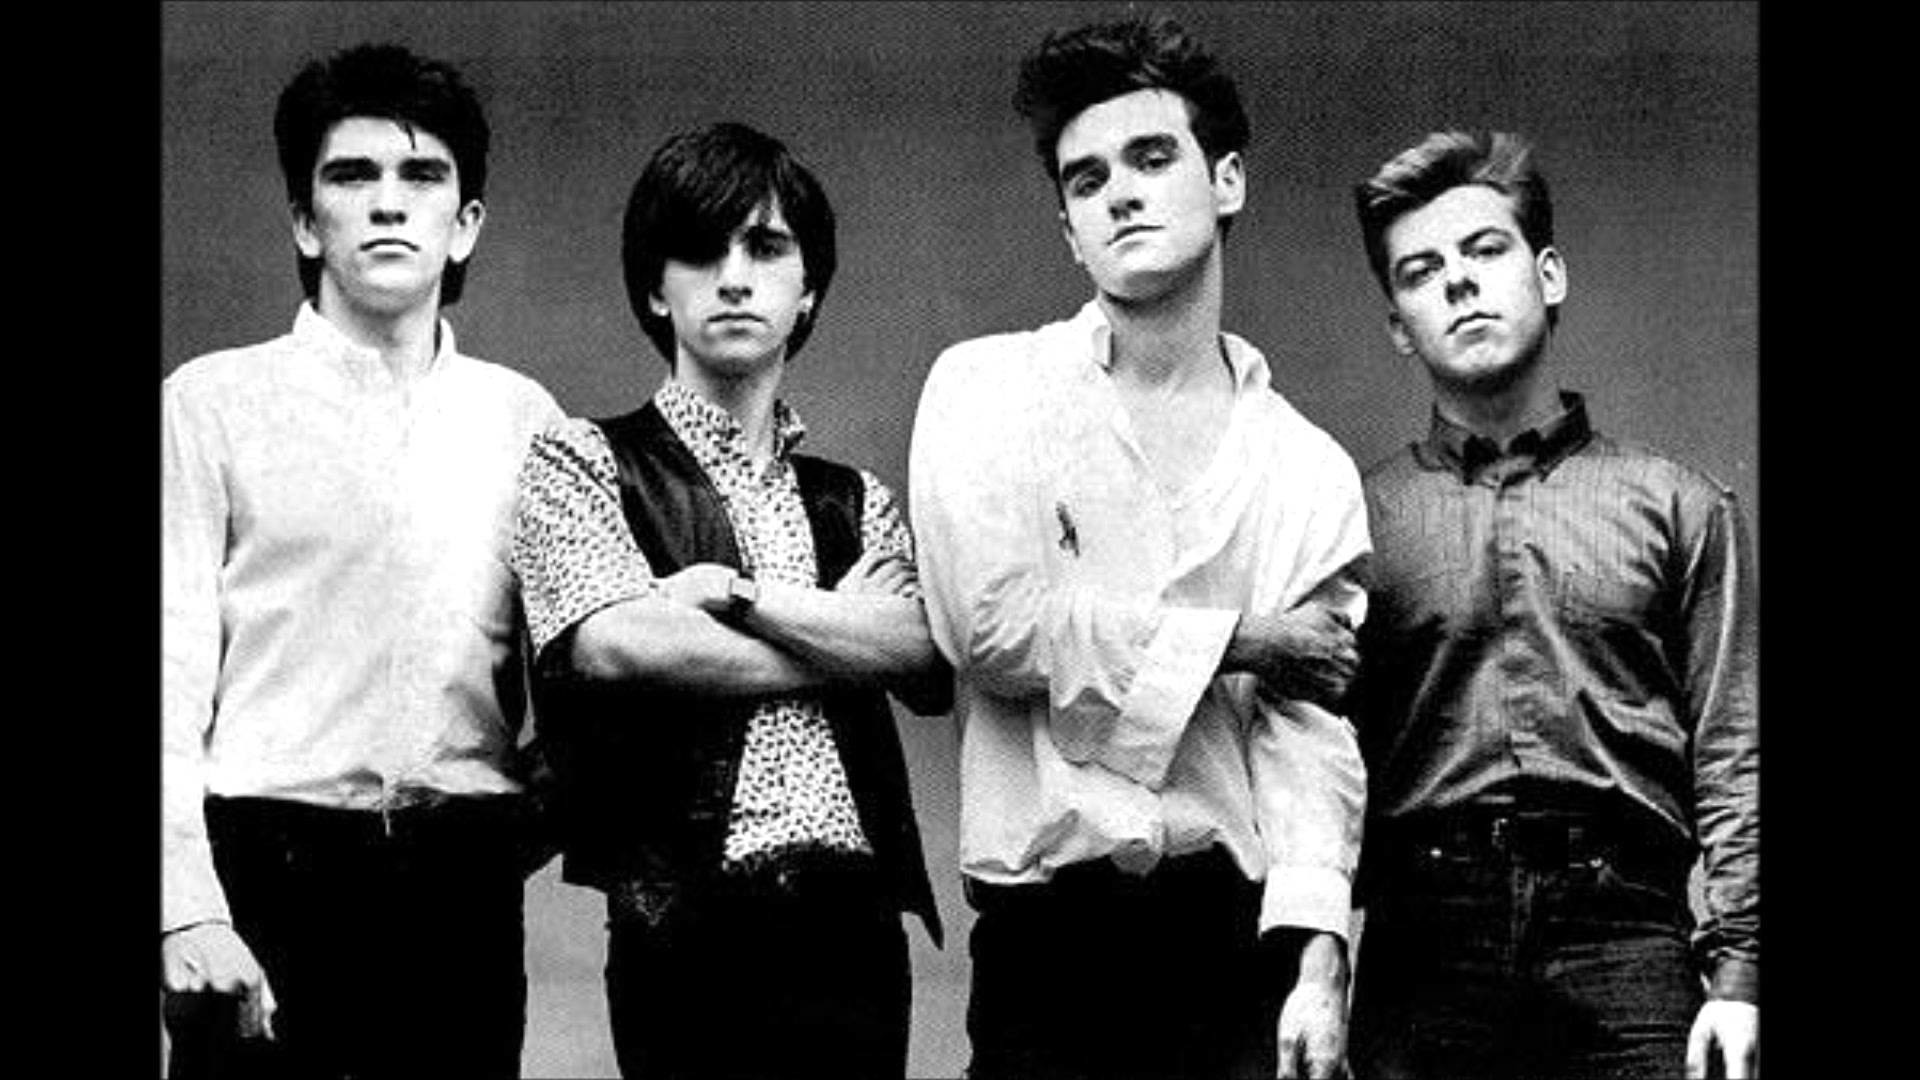 This Charming Man – The Smiths – Madmark Remix